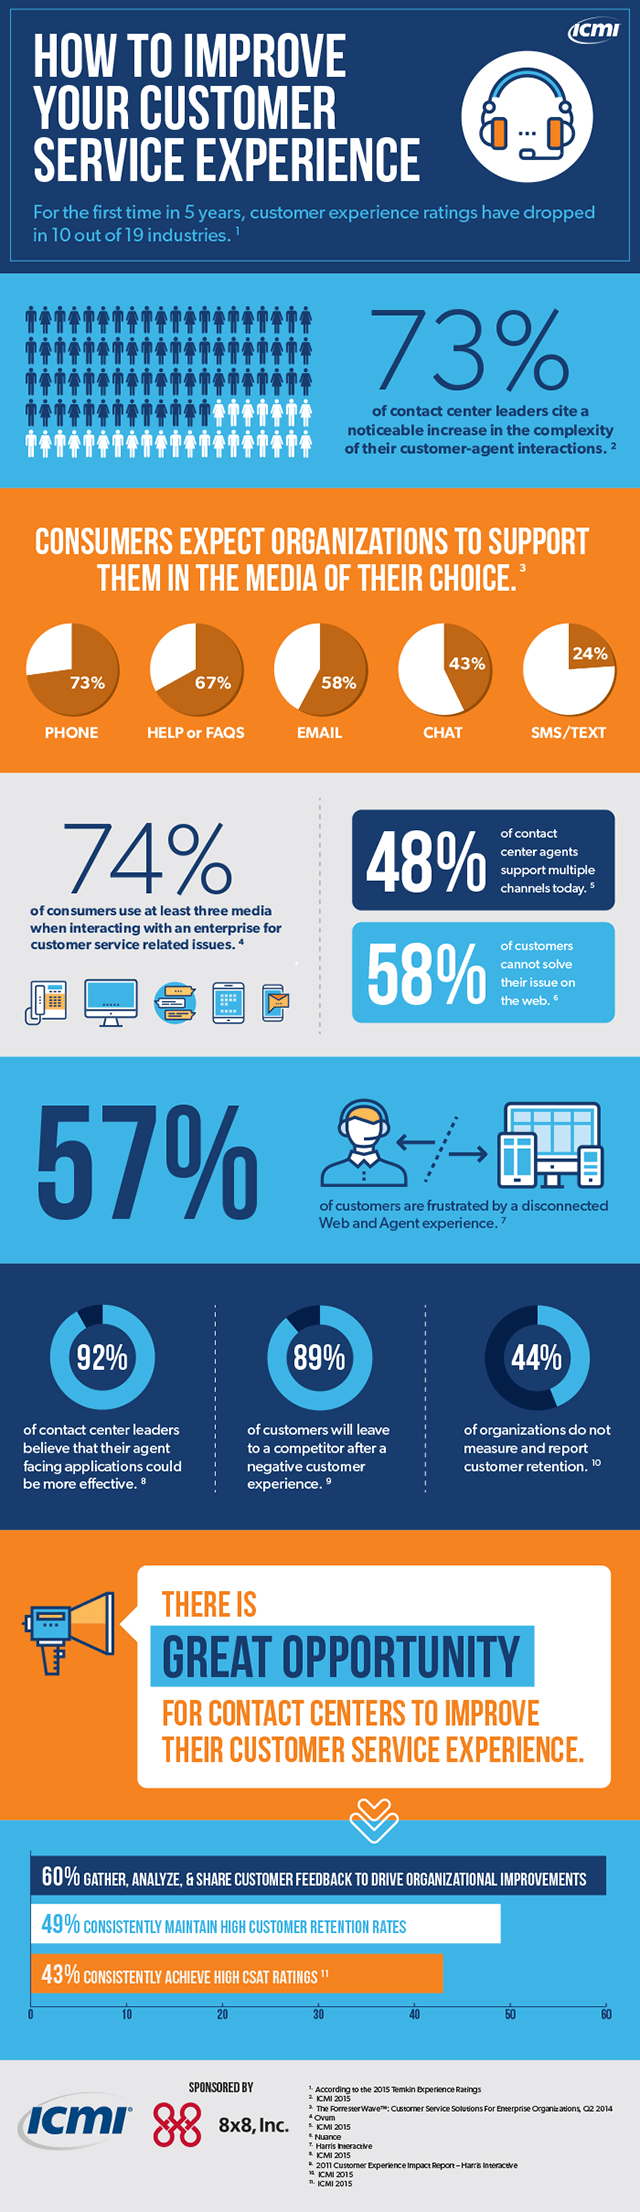 Infographic: How to Improve Customer Service